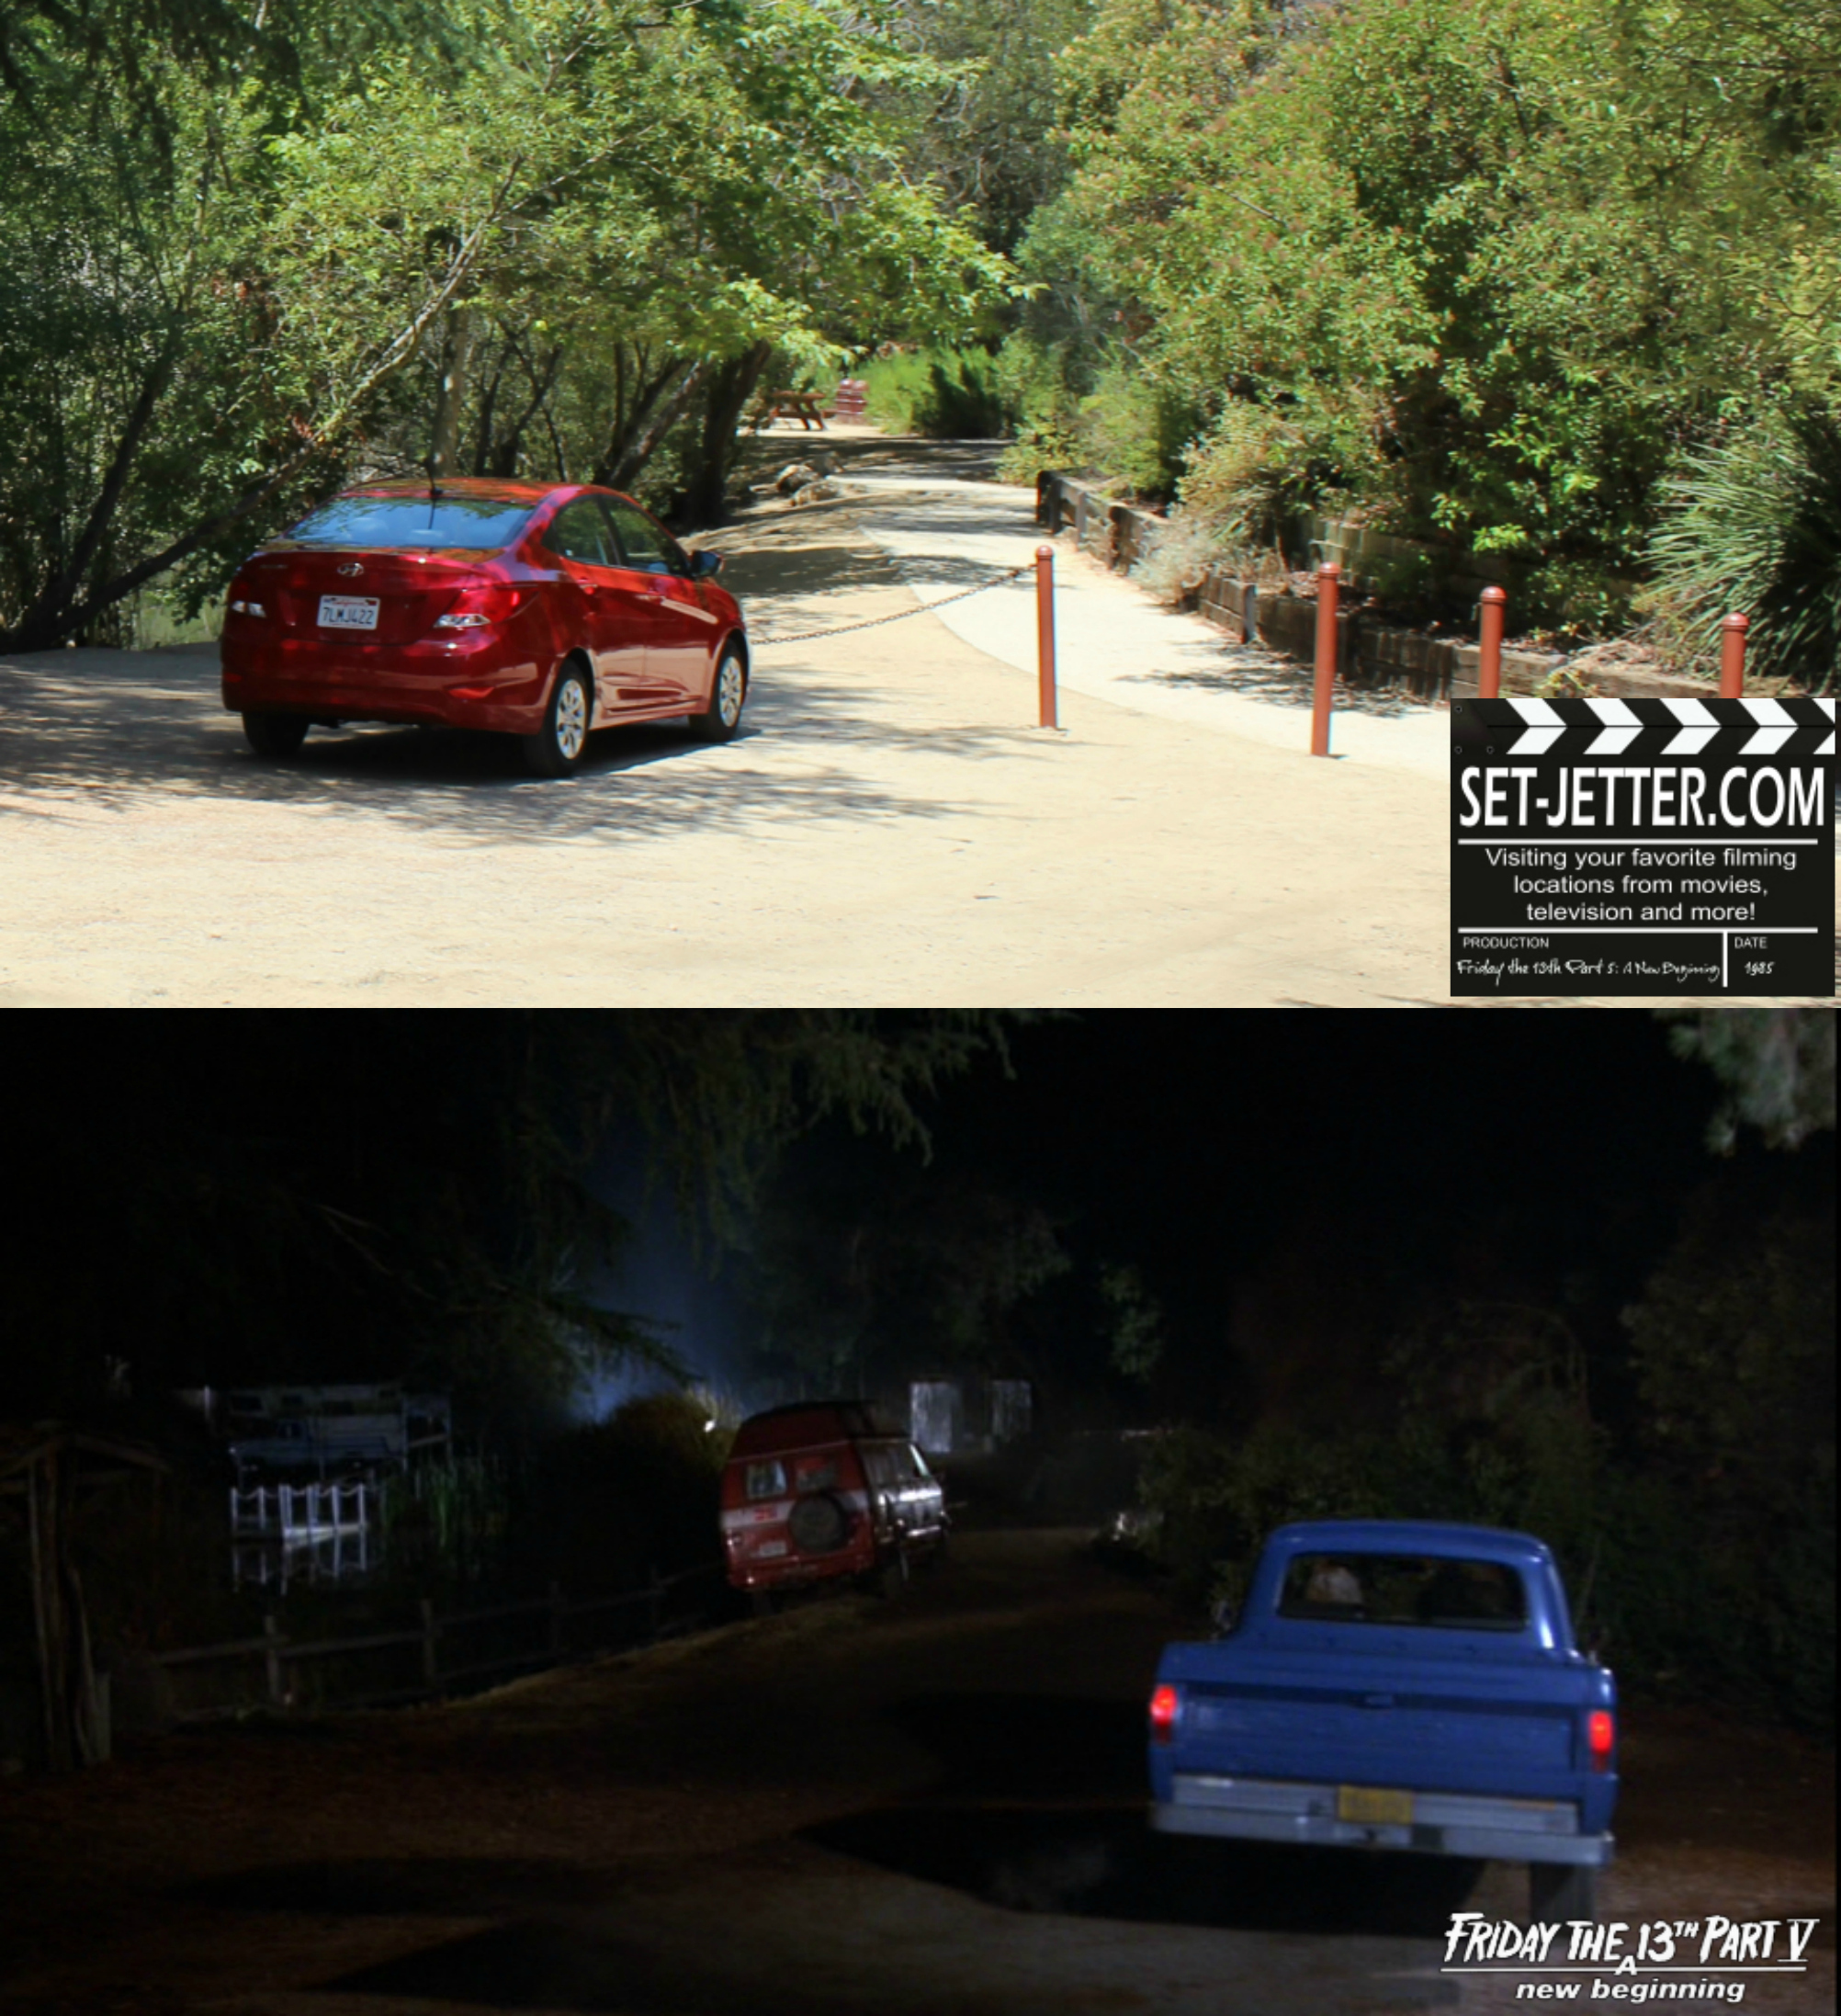 Friday the 13th Part V comparison 36.jpg